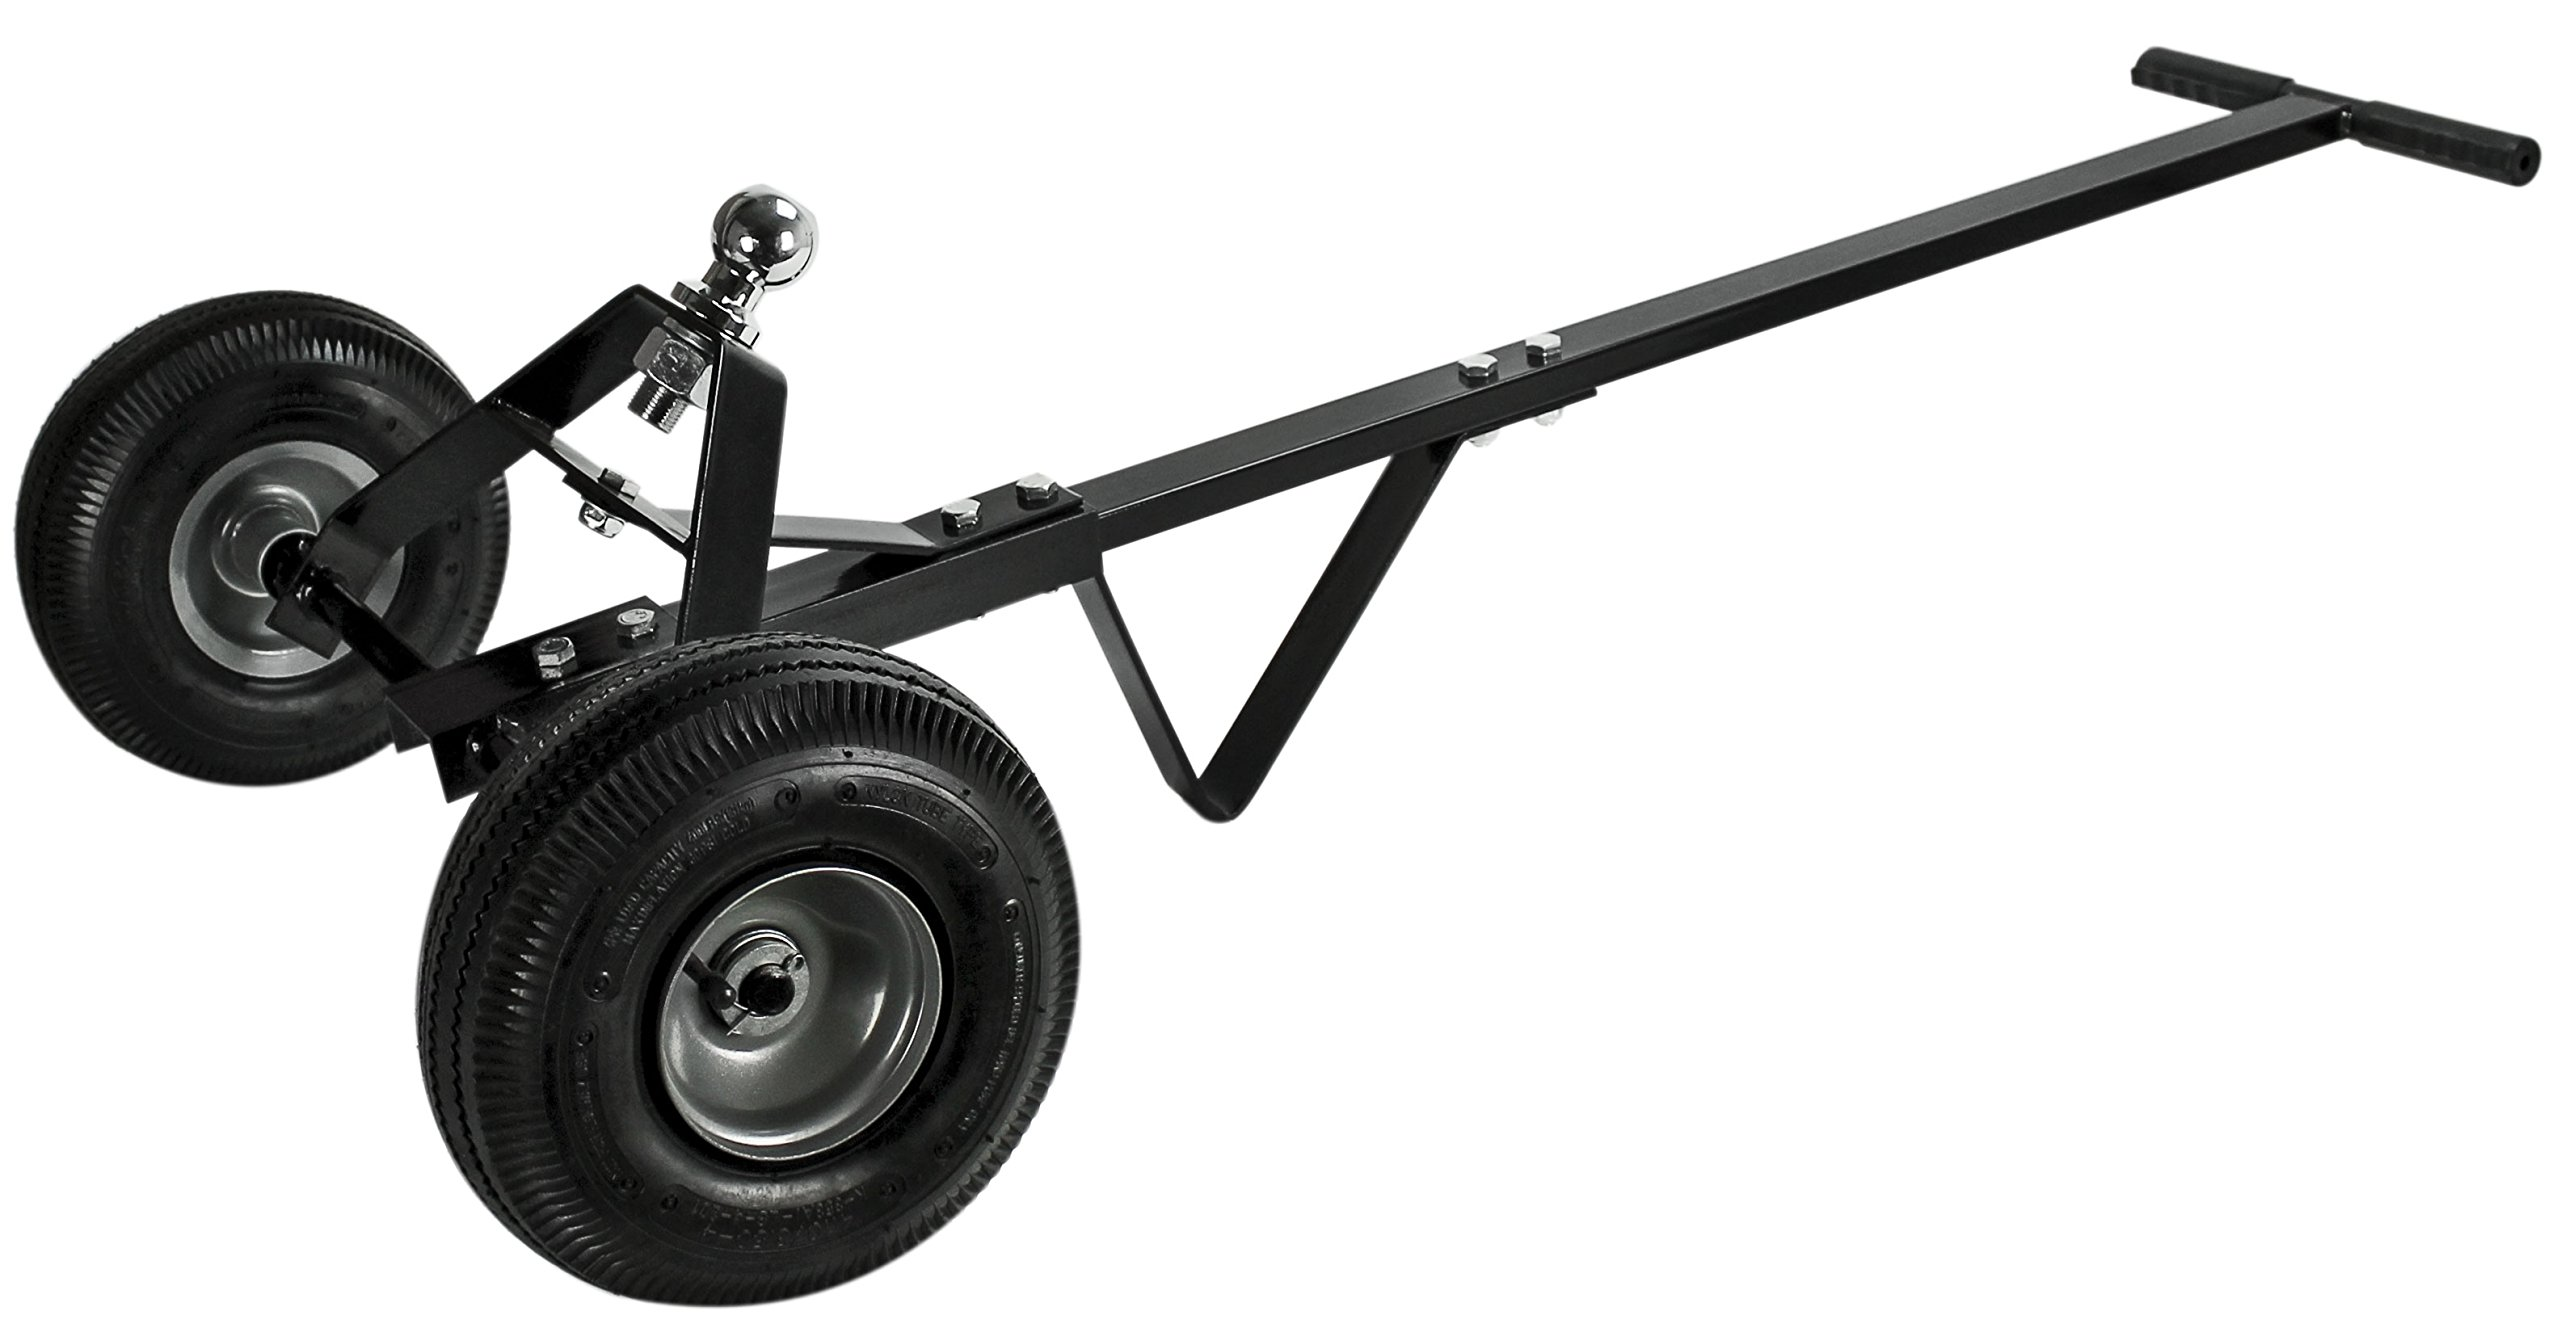 Extreme Max 5001.5766 Trailer Dolly-600 lb by Extreme Max (Image #3)